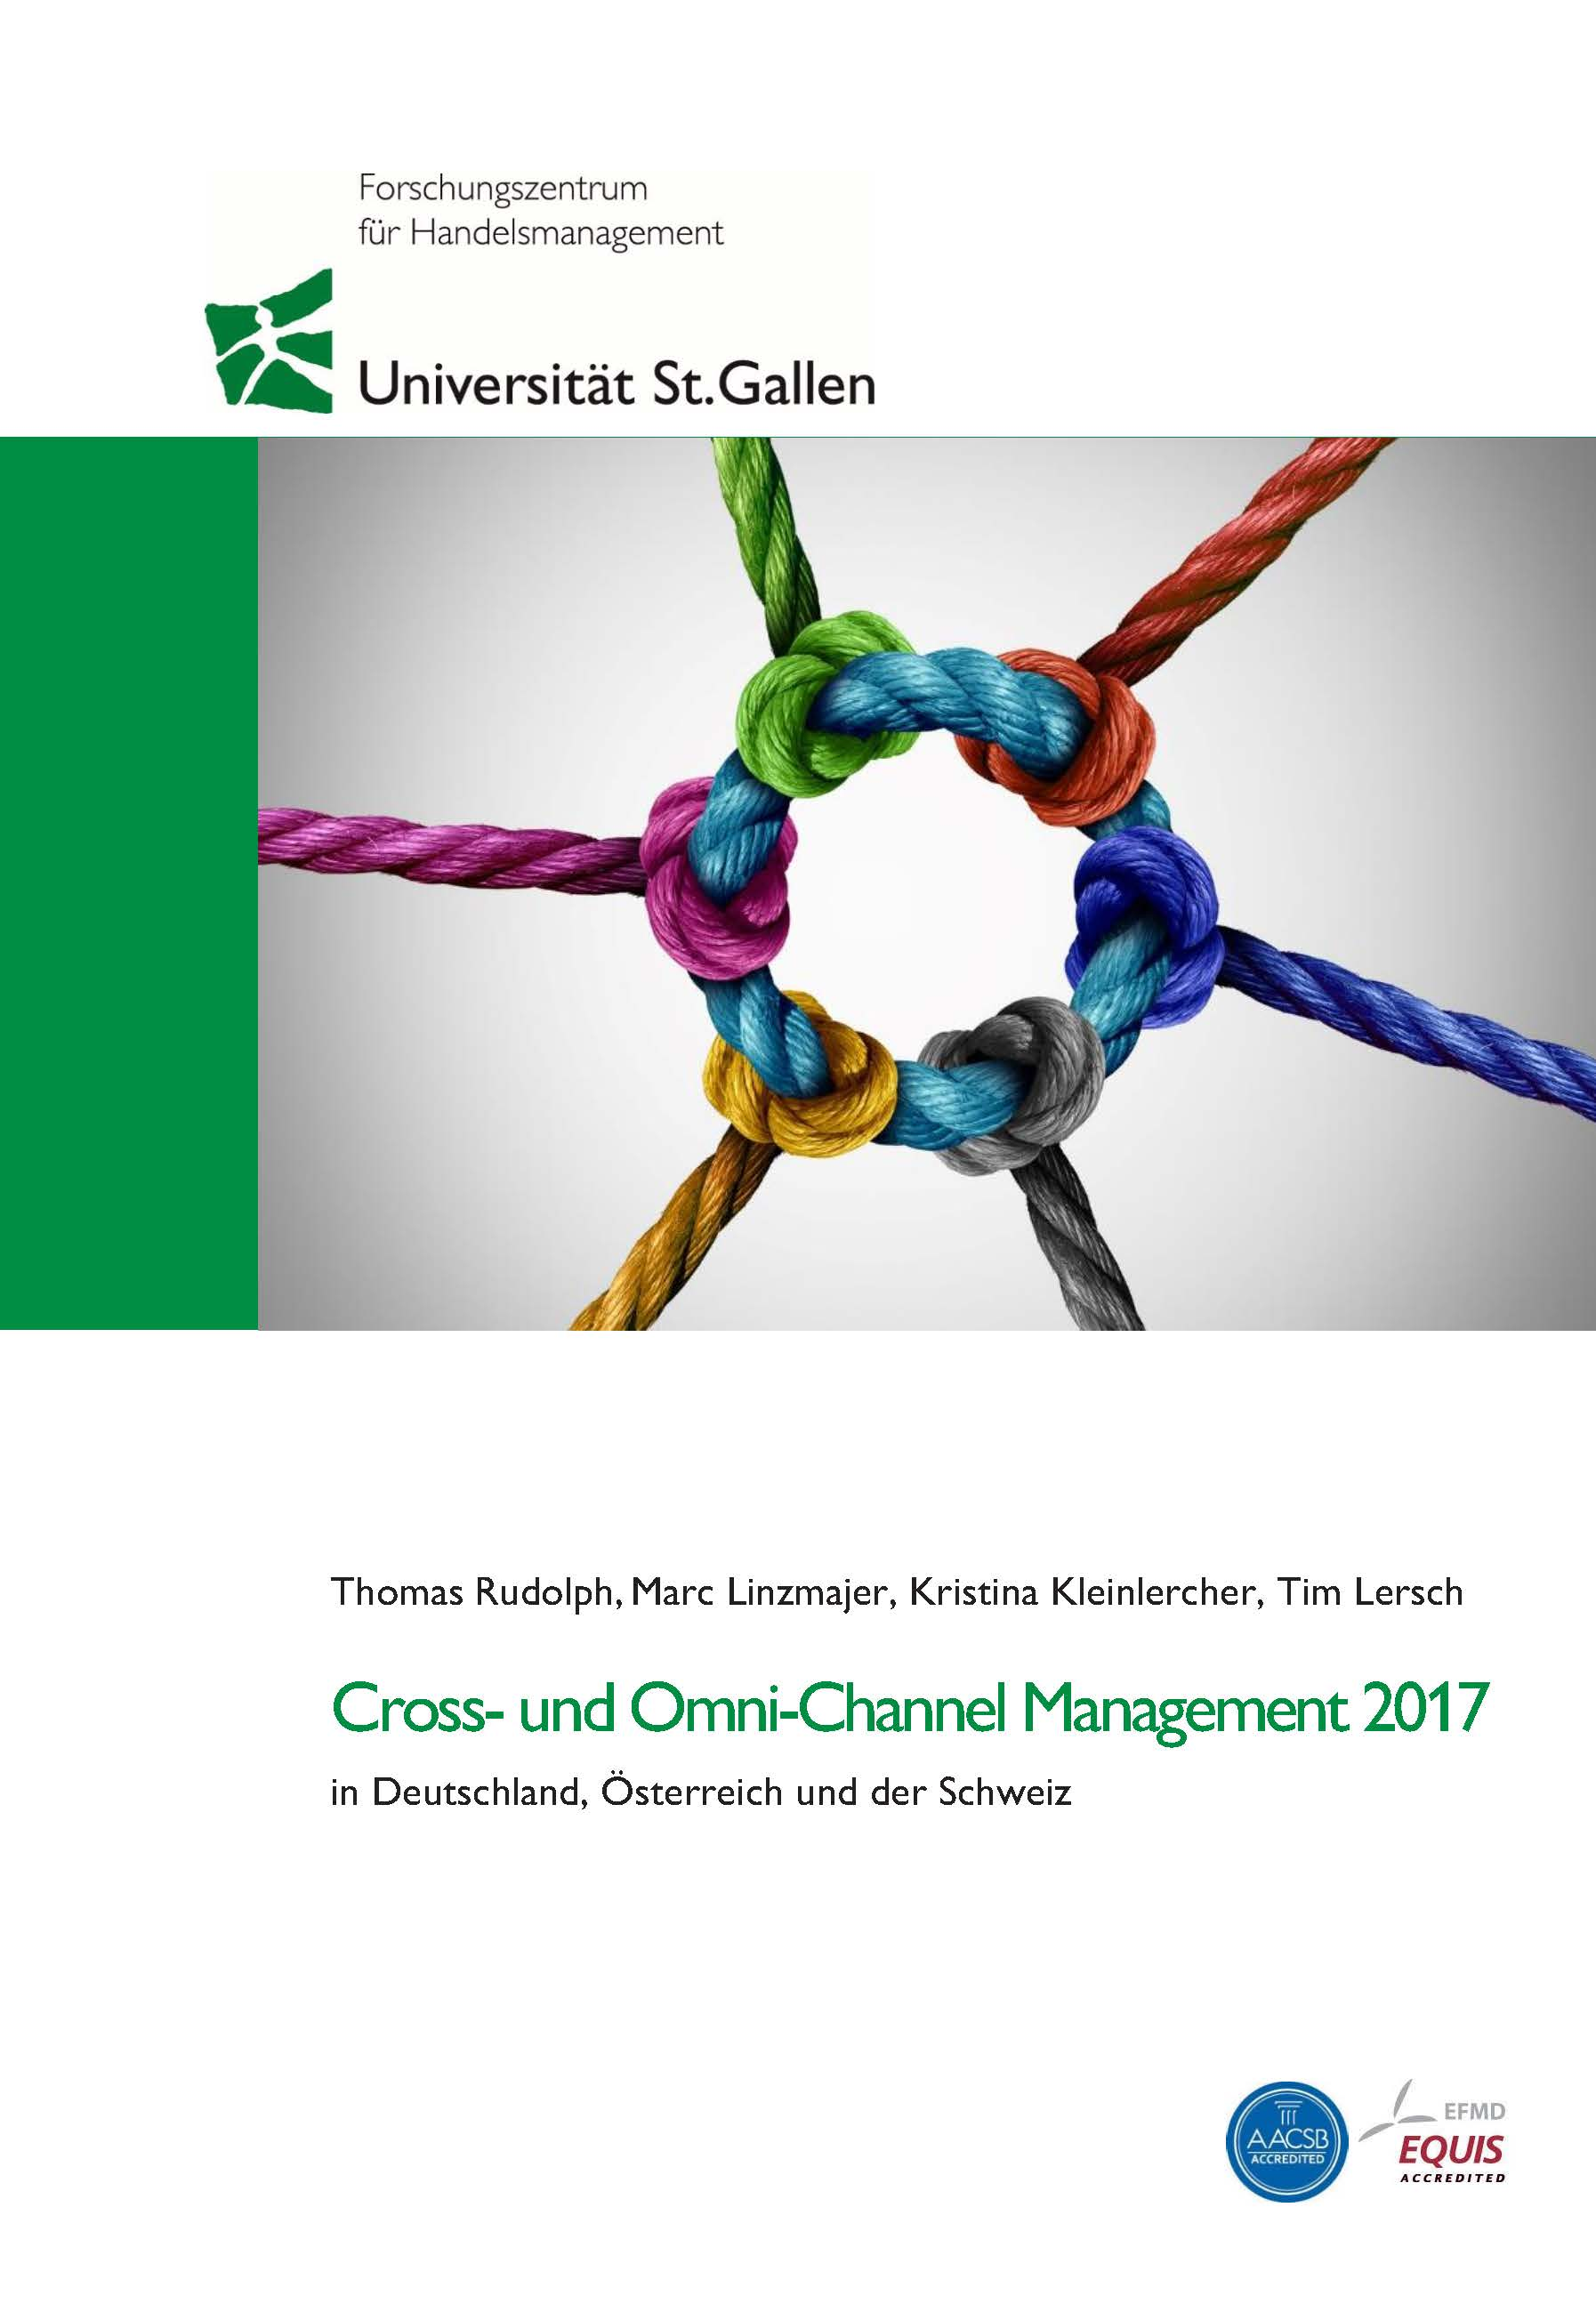 Cross-Channel Management Studie 2017